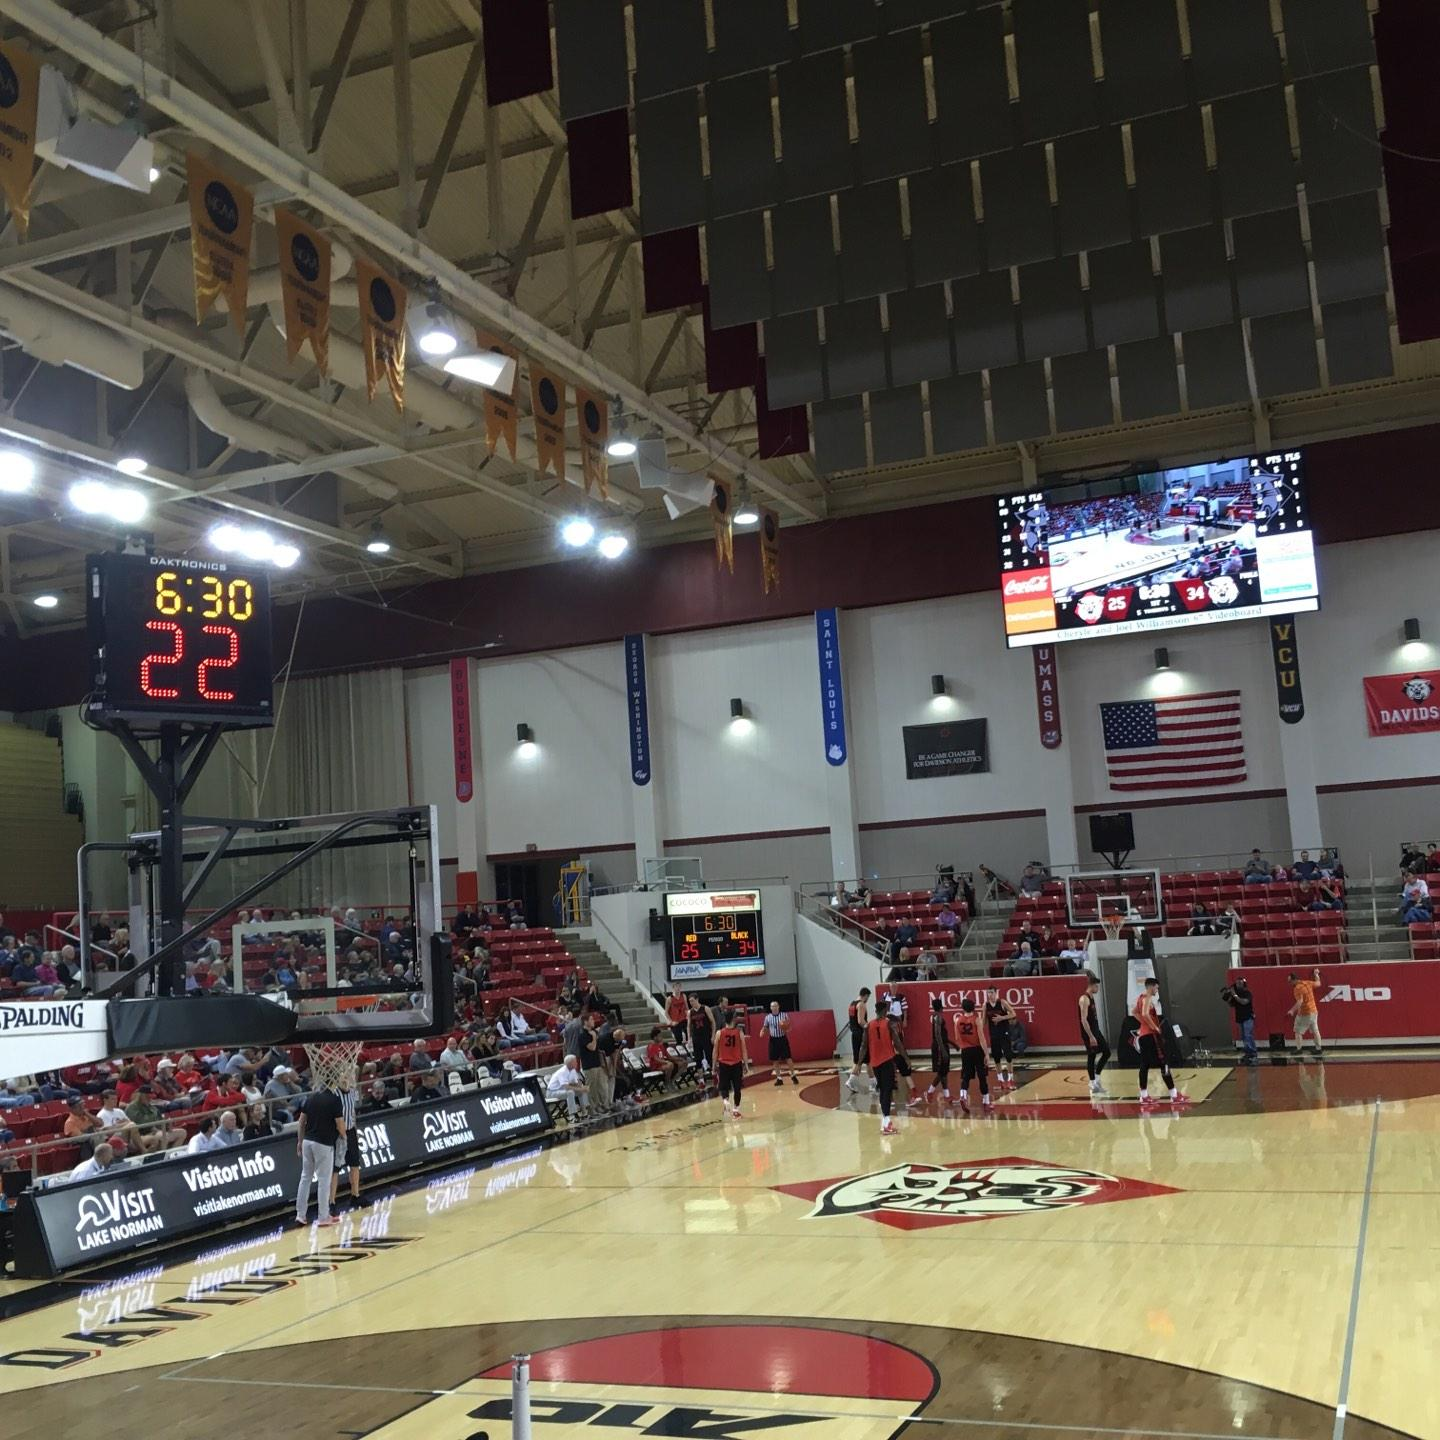 John M. Belk Arena Section 3 Row E Seat 1